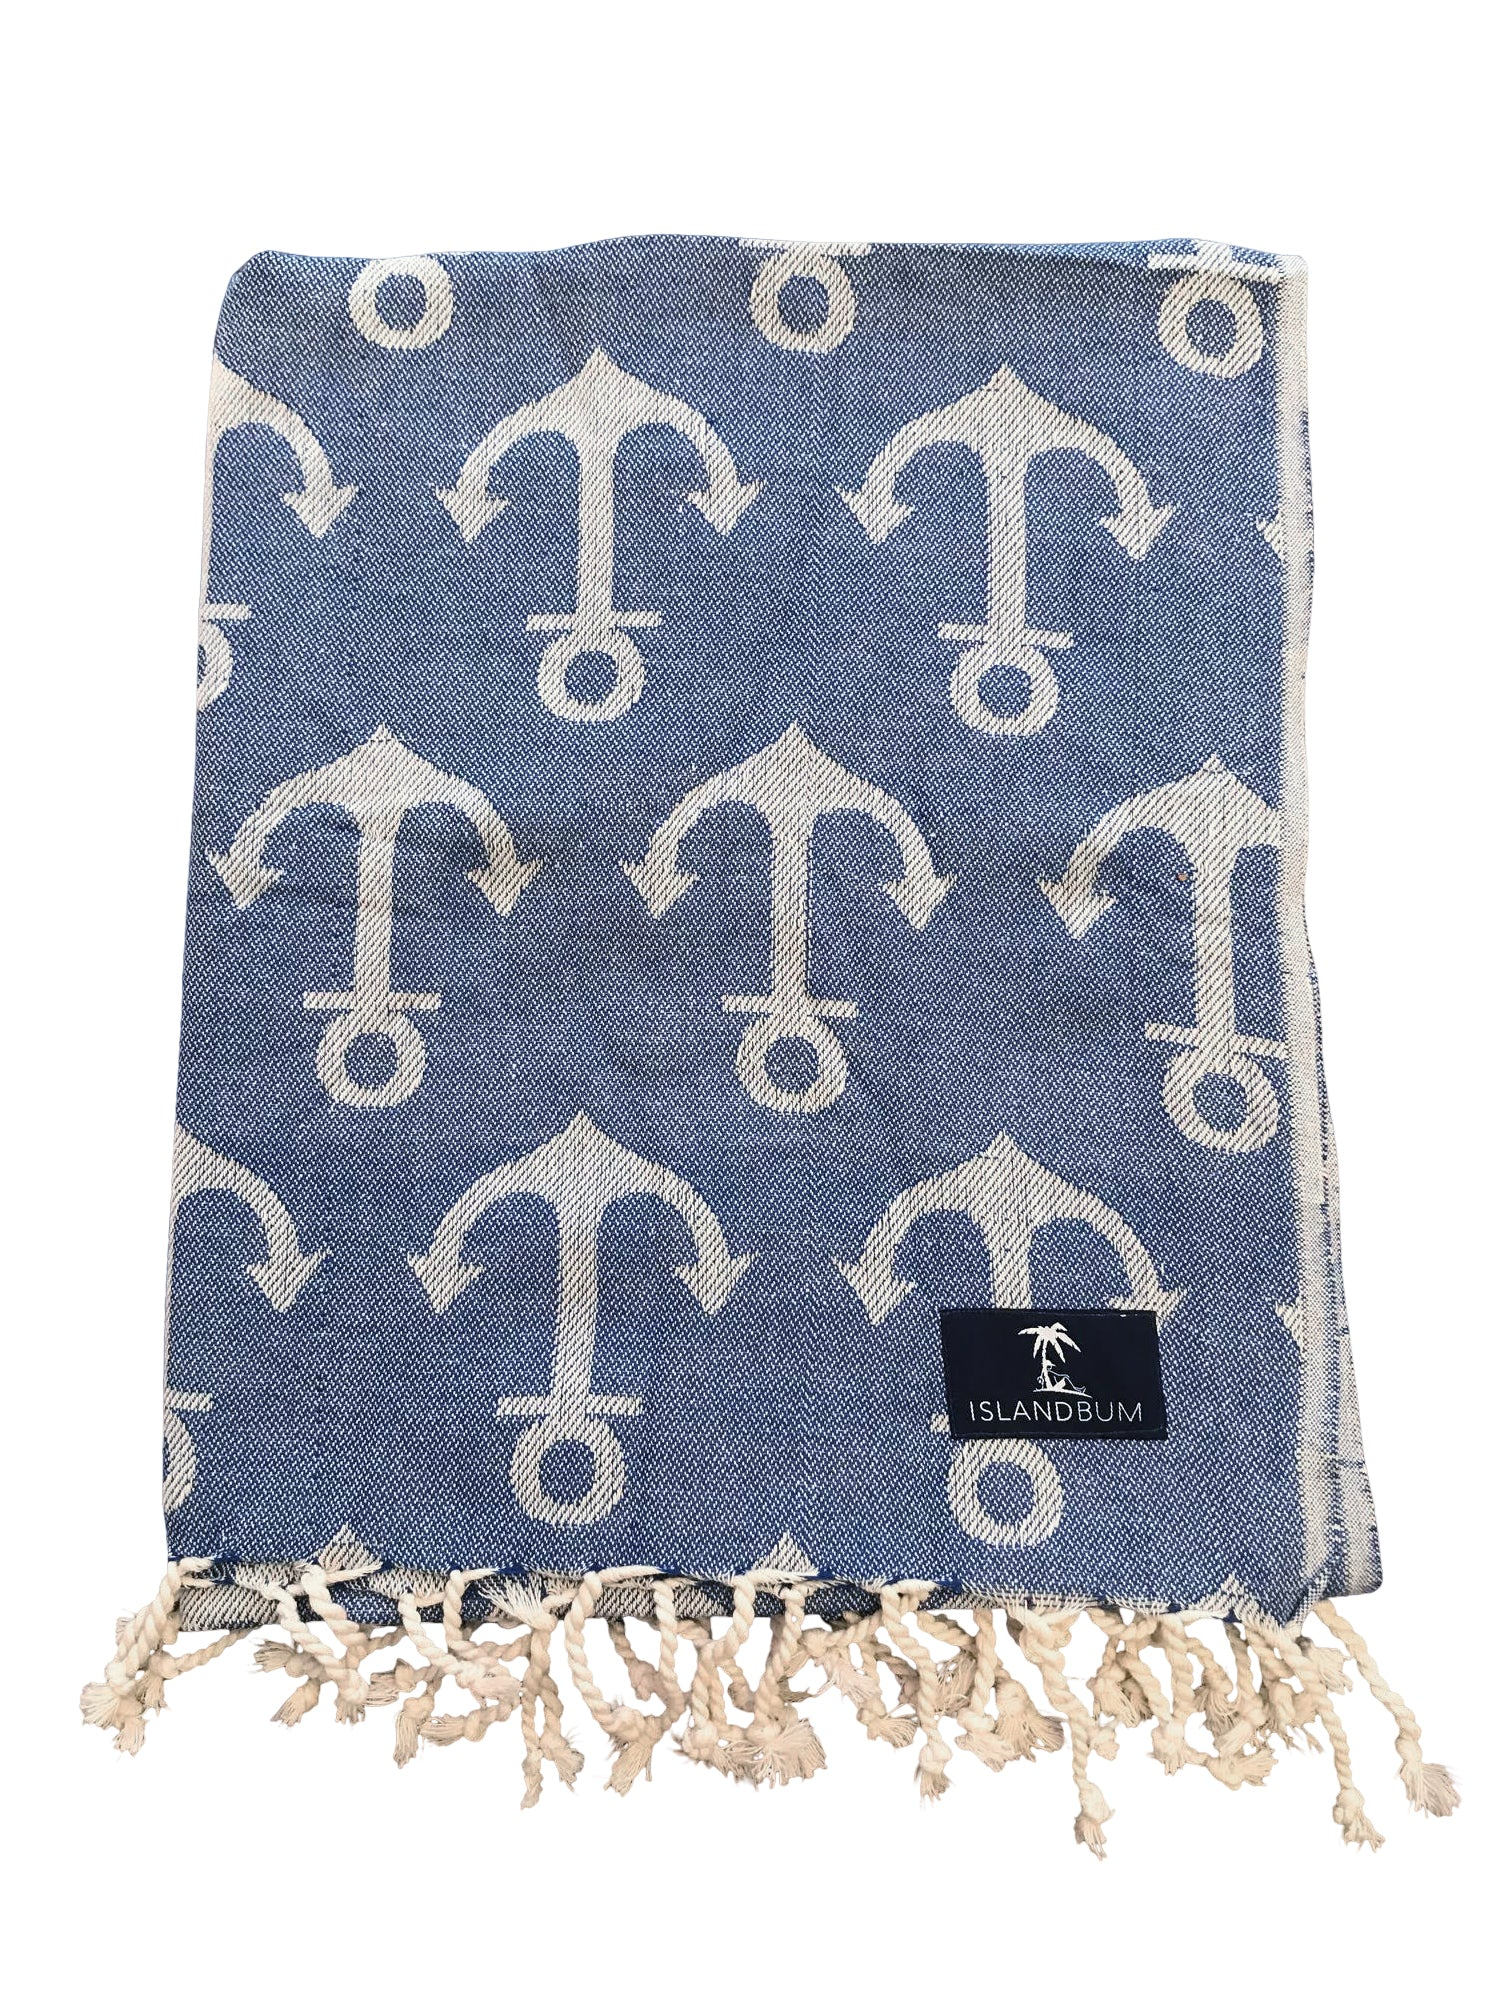 Island Bum Anchors Turkish Towel